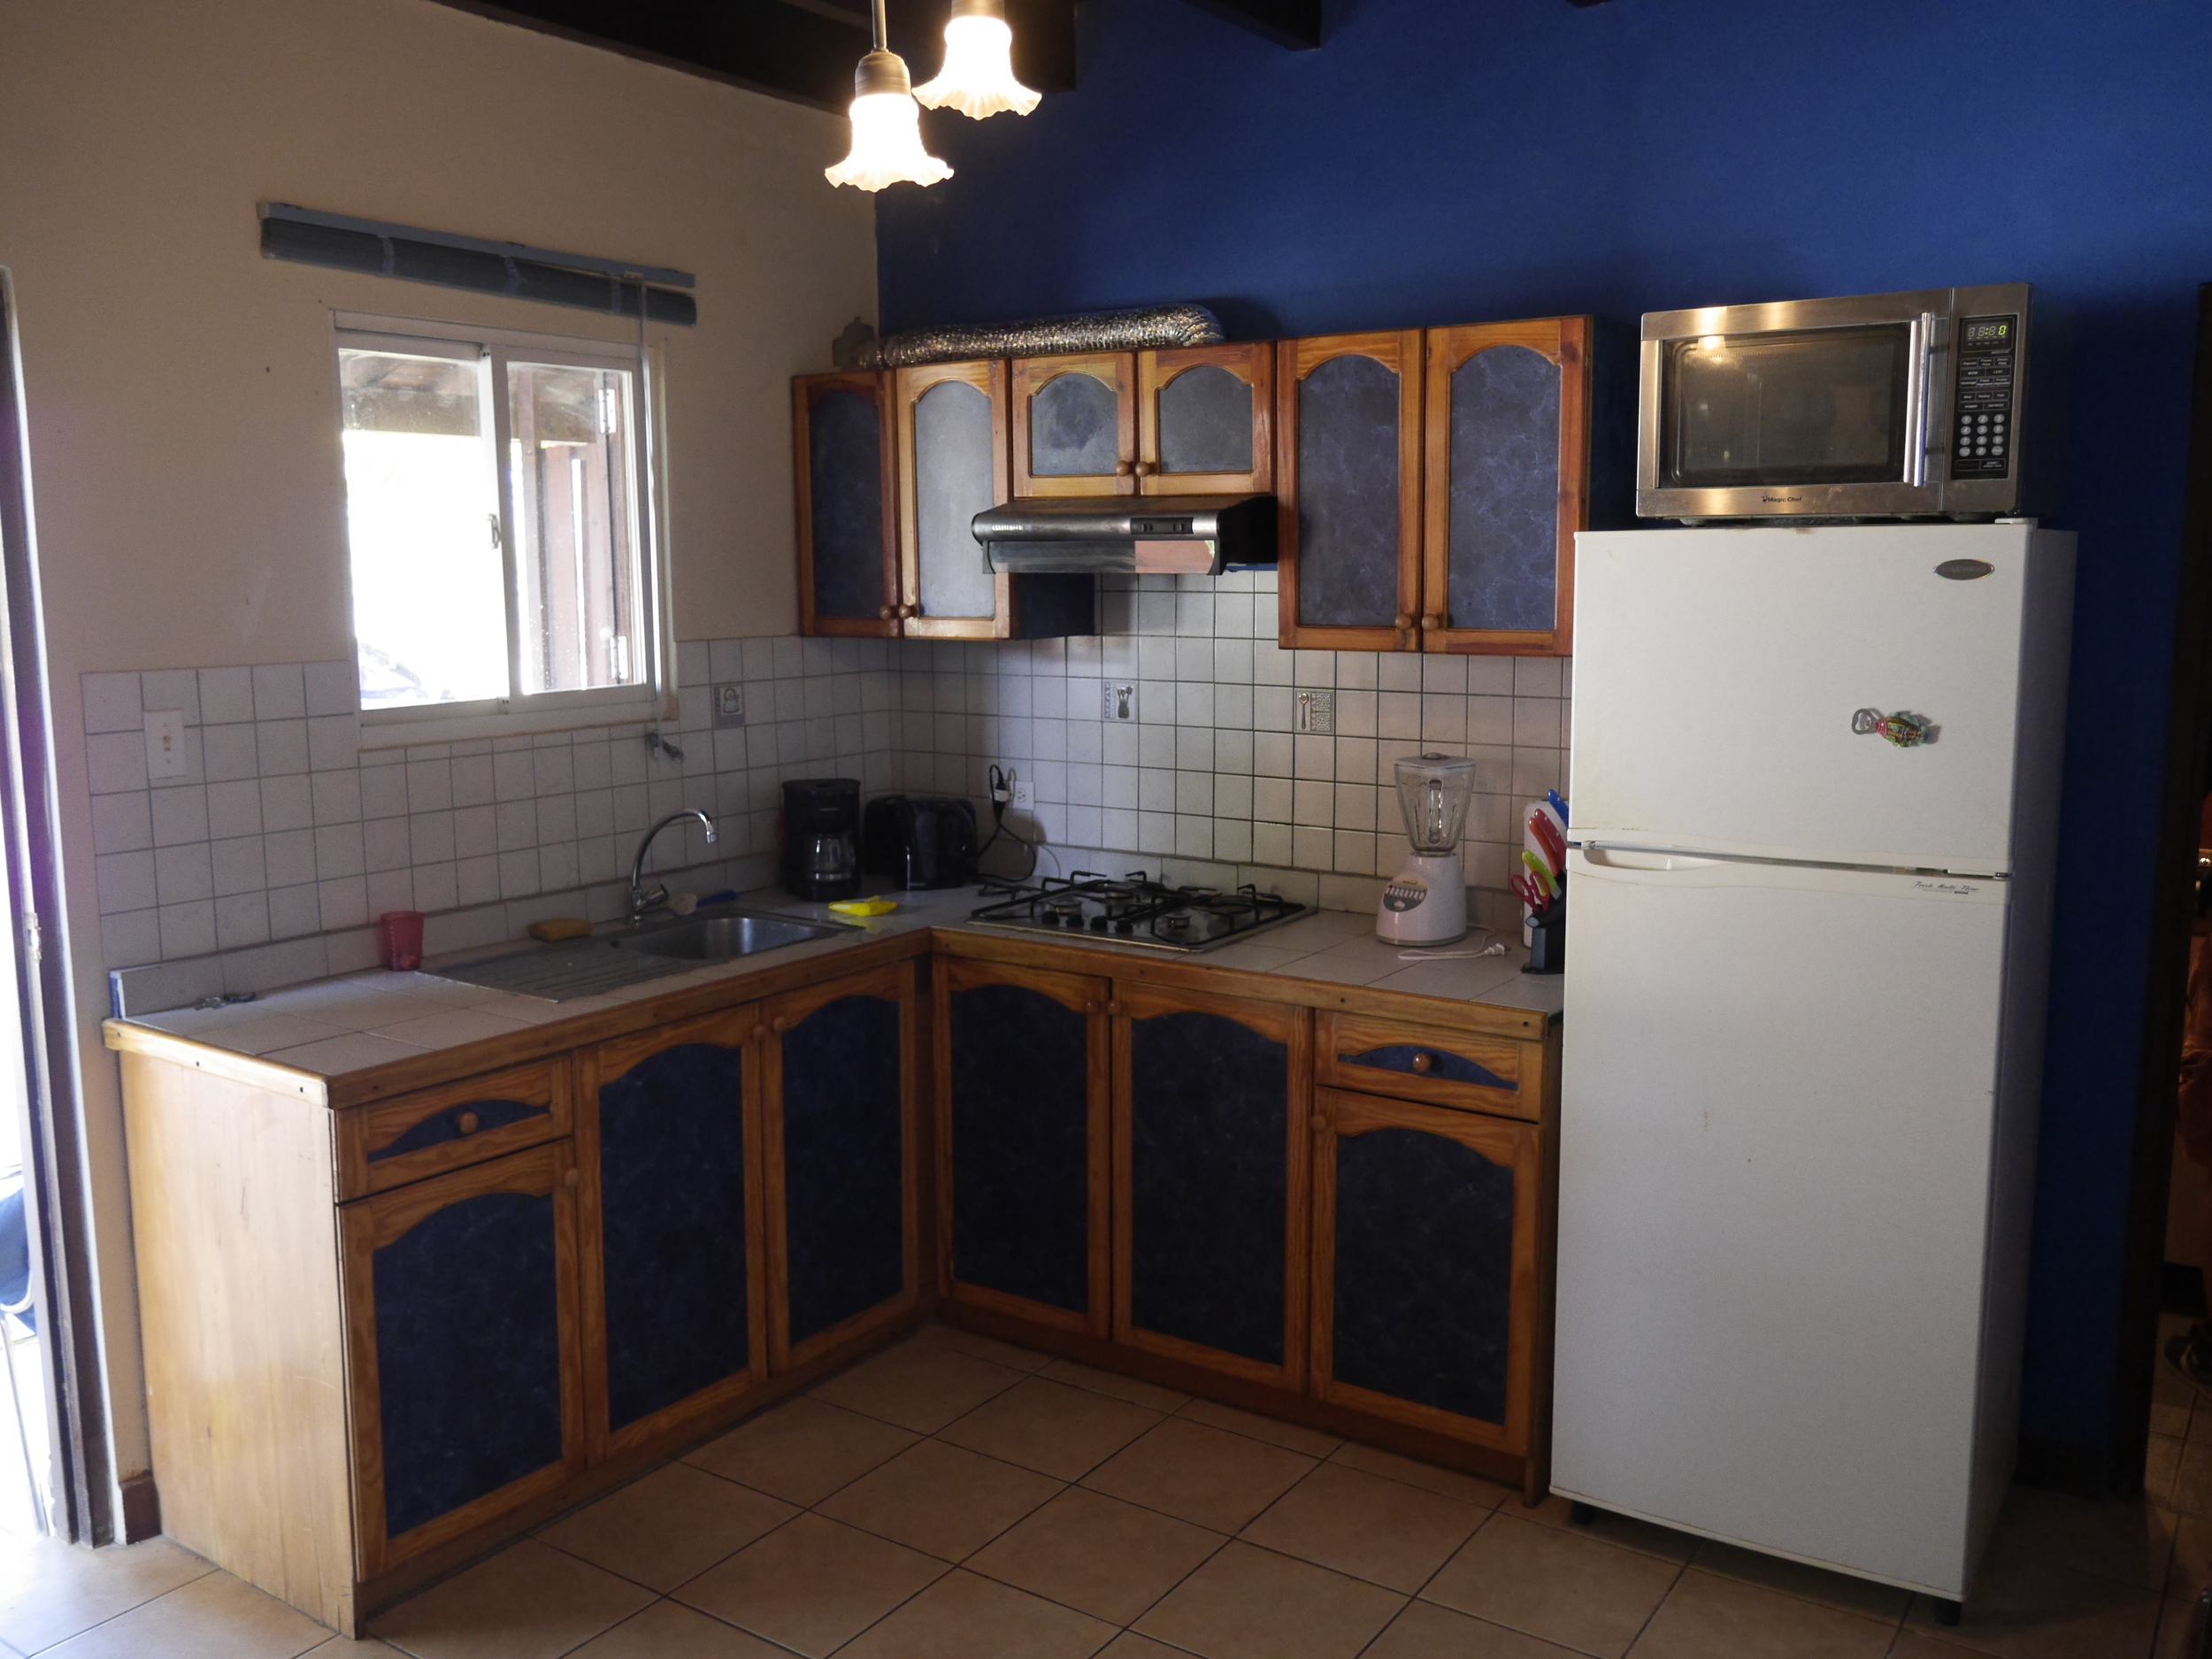 kitchen from overall perspective.